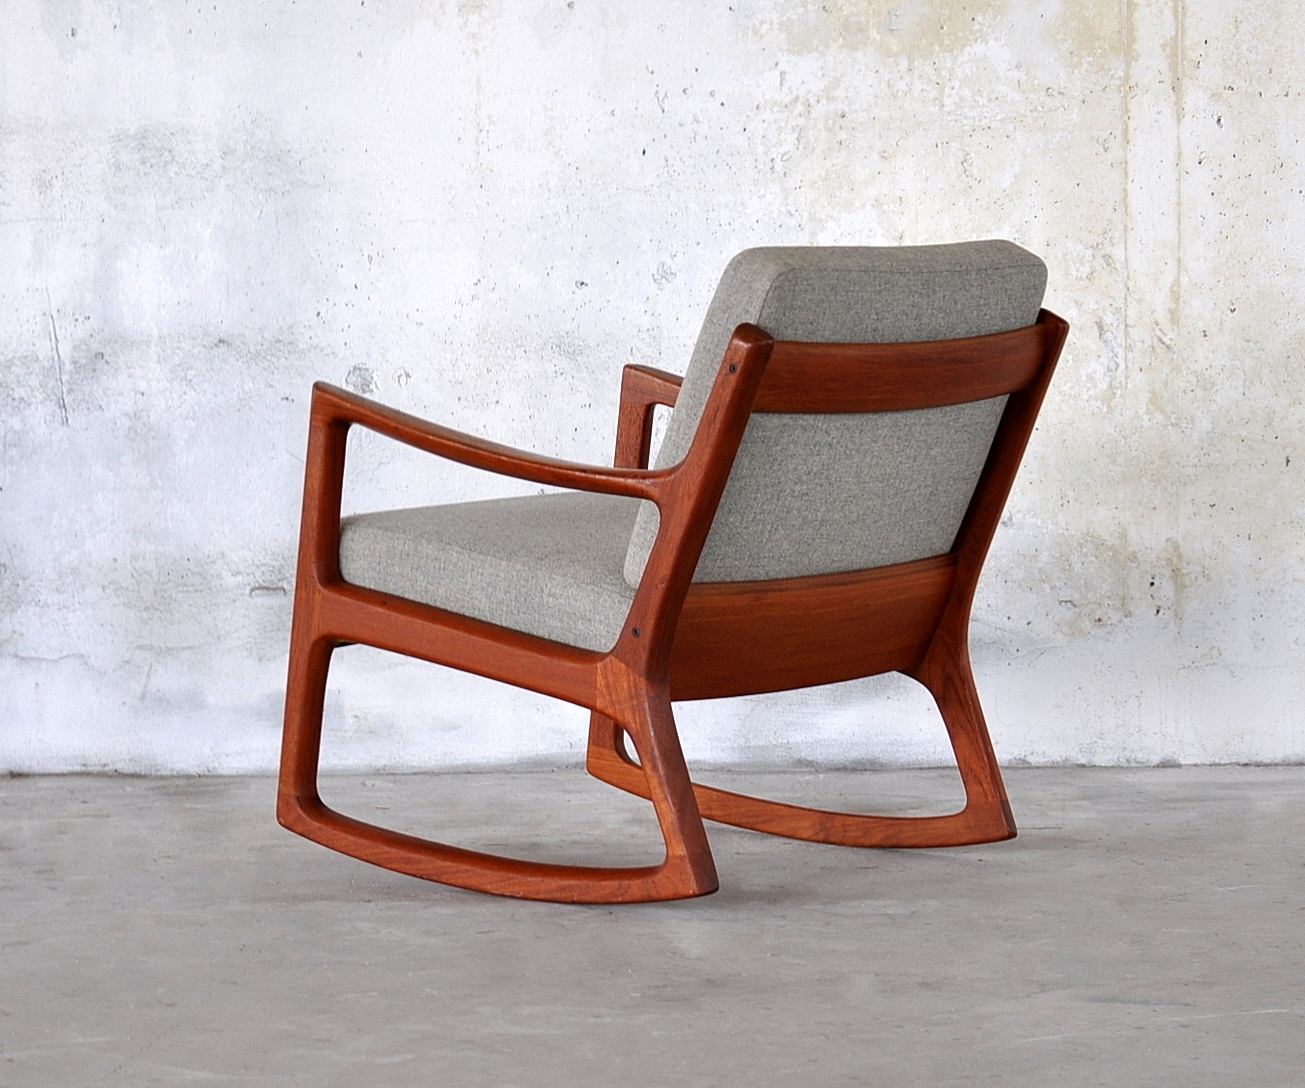 Contemporary Rocking Chair Uk — All Contemporary Design : Unique Within Modern Patio Rocking Chairs (View 3 of 15)